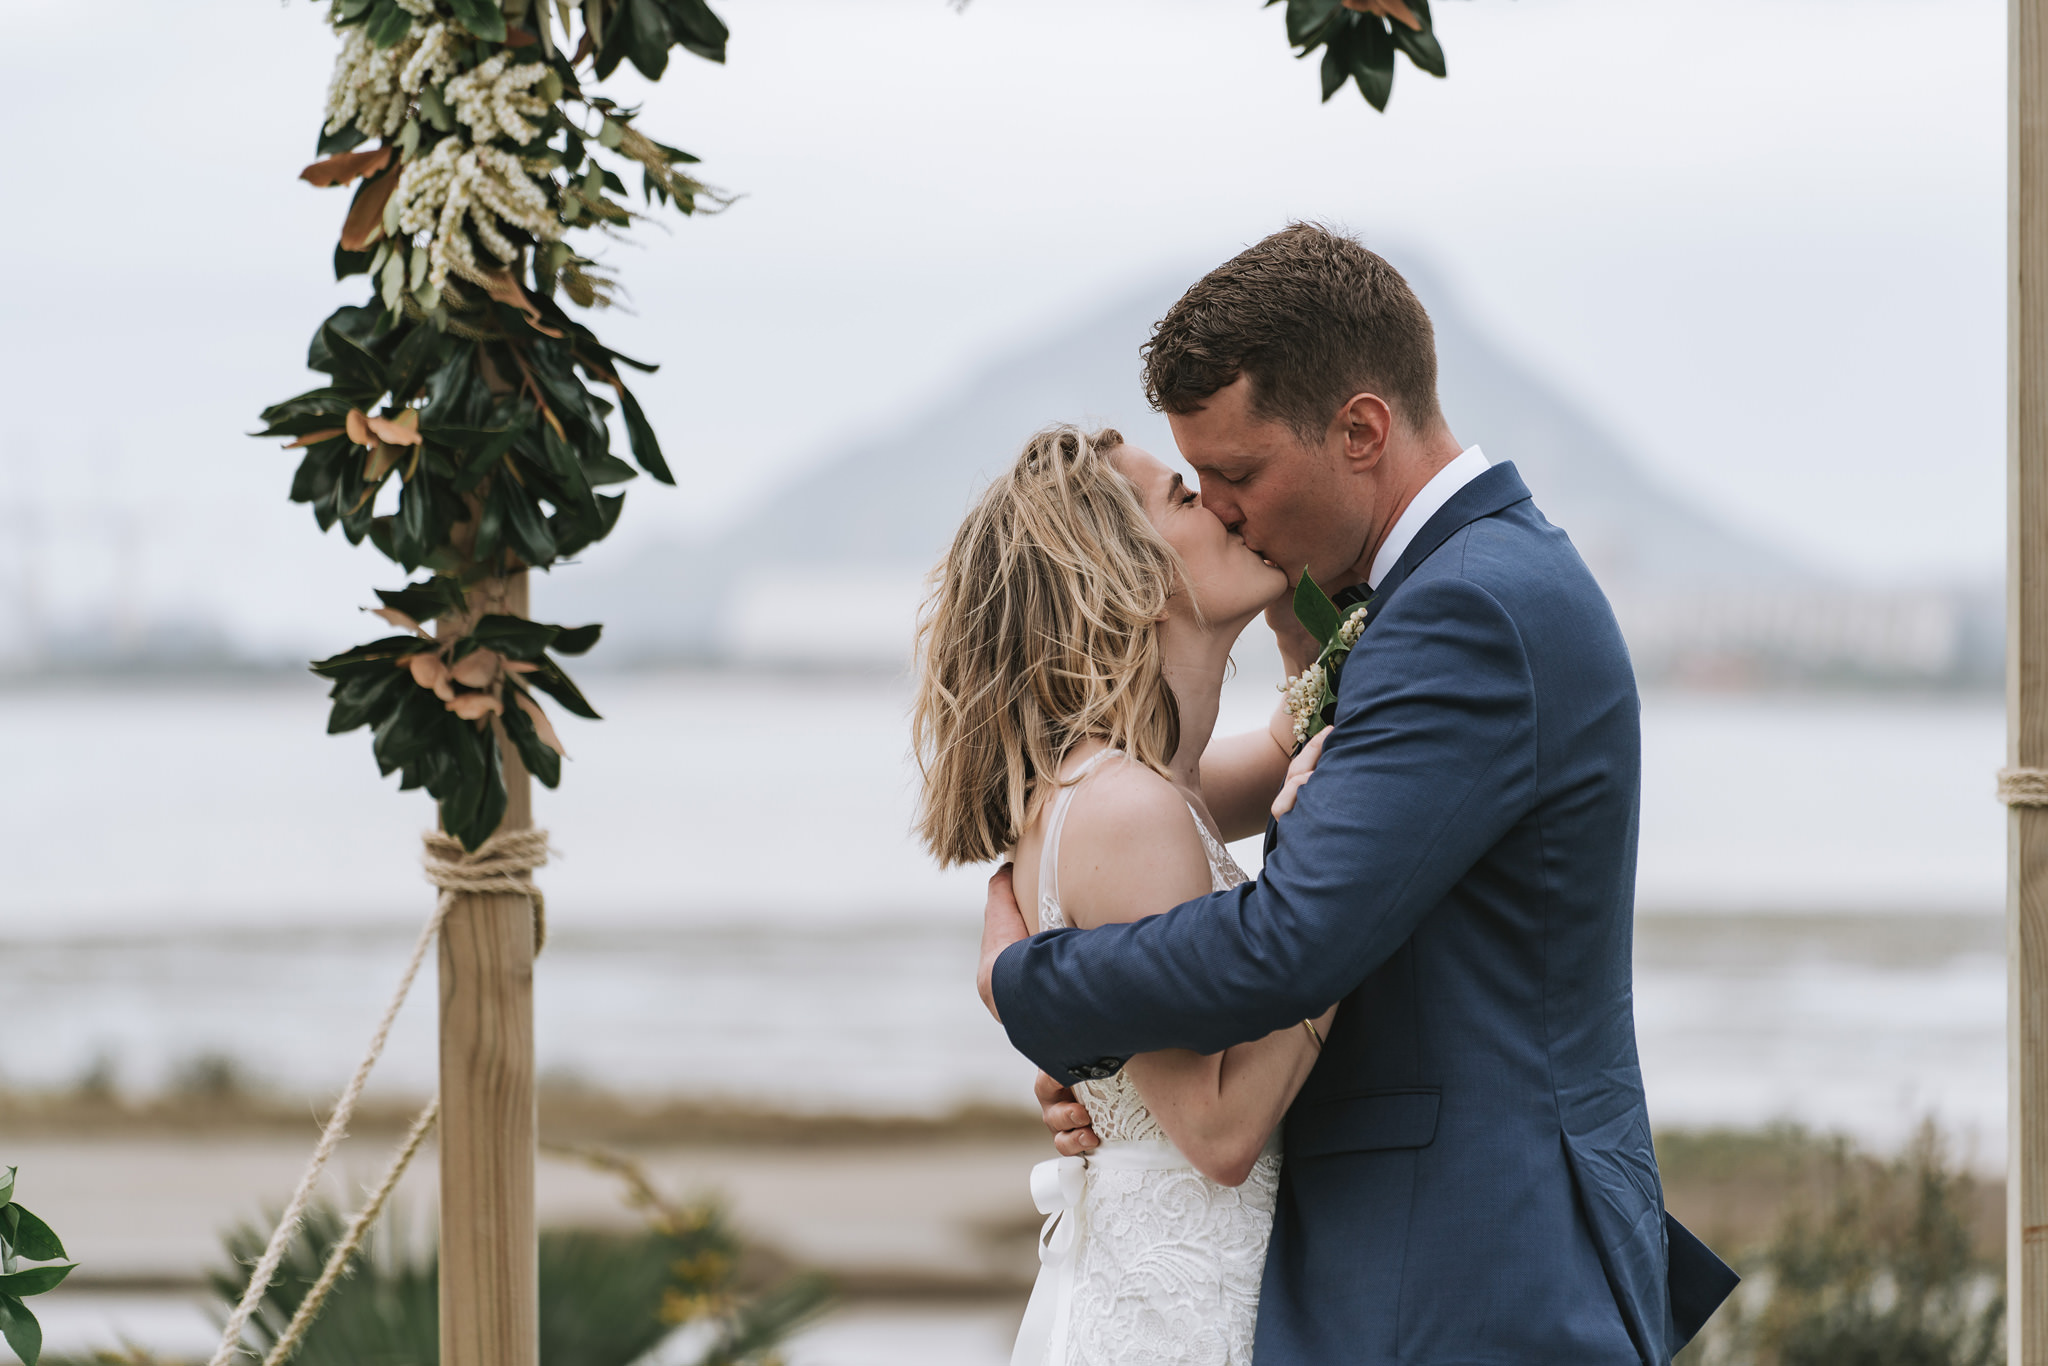 newfound-s-a-tauranga-new-zealand-wedding-photography-491